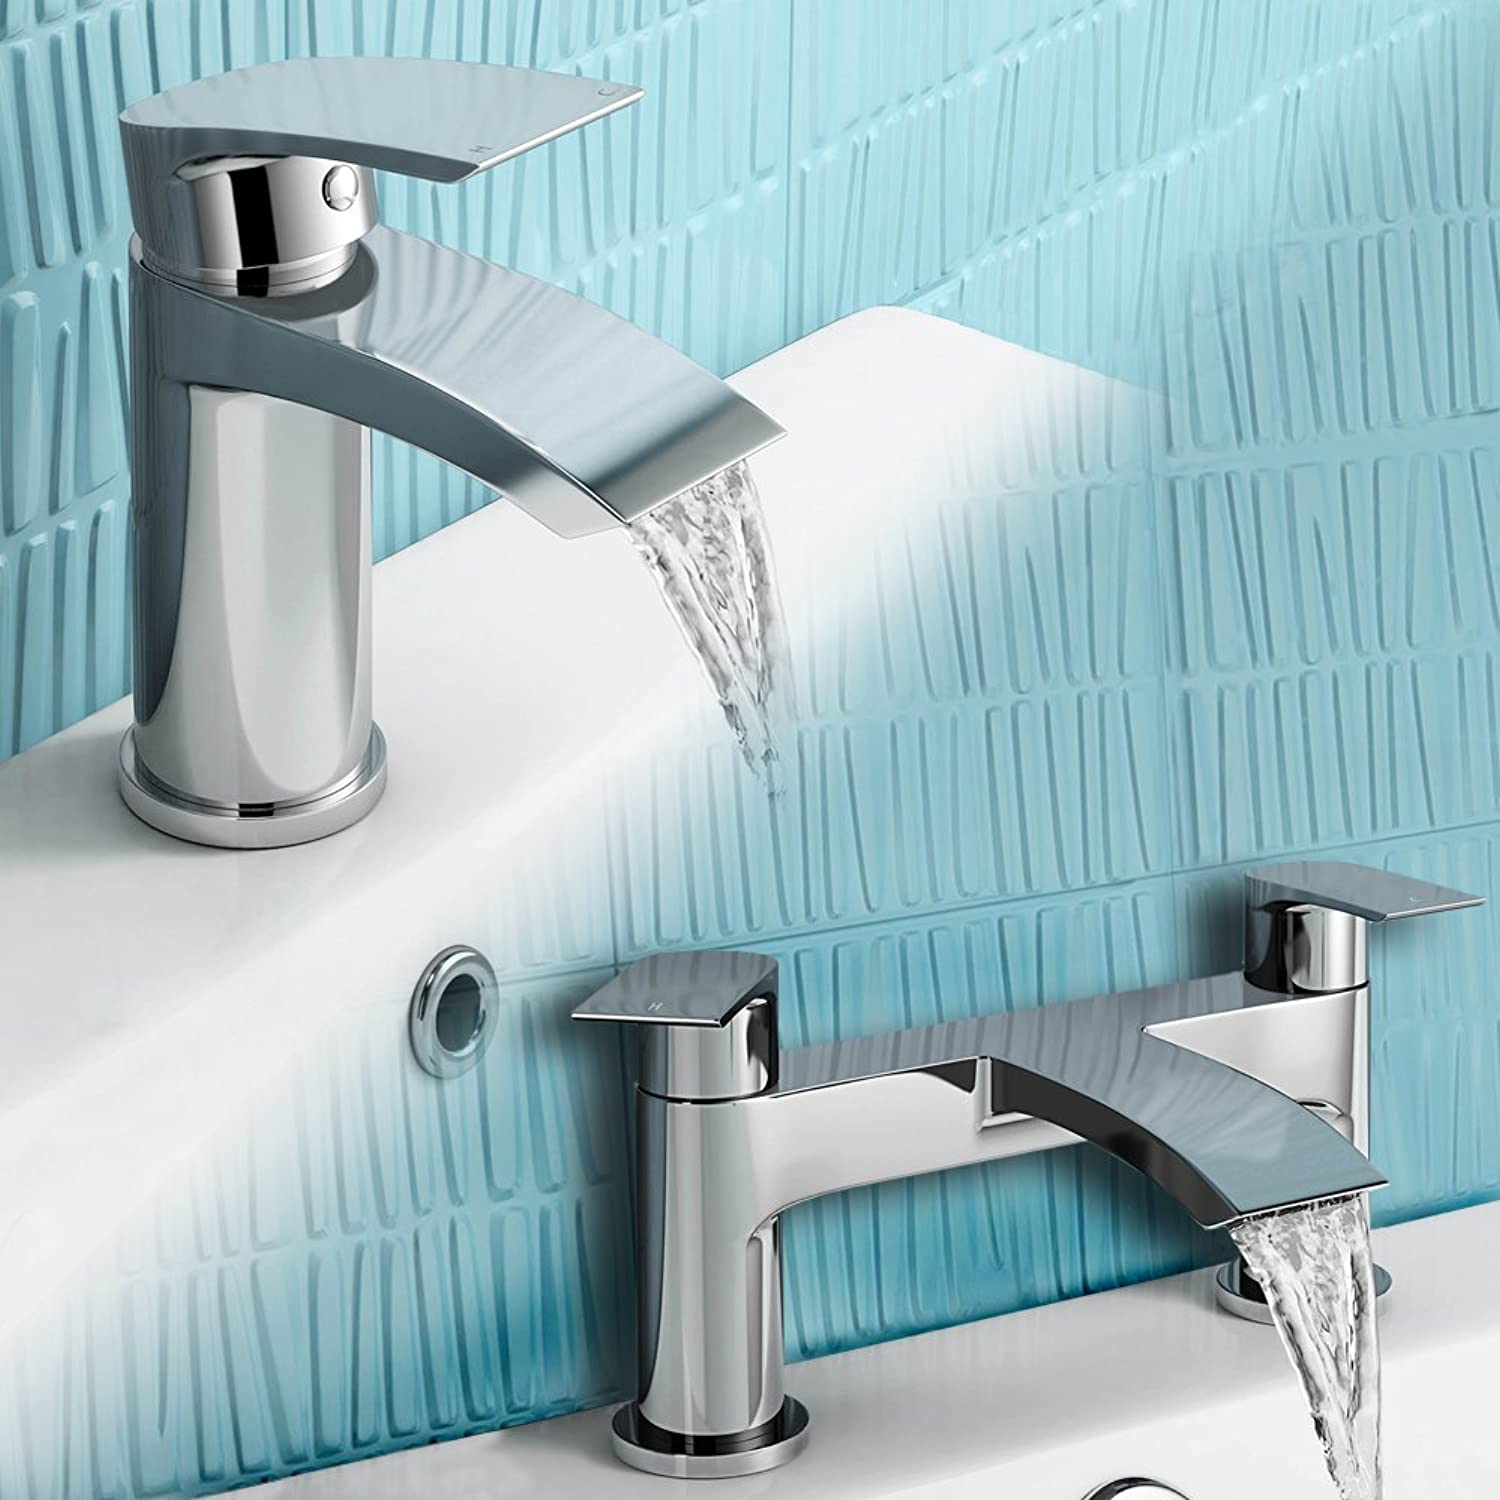 IBathUK   Chrome Basin Sink Mixer Tap + Bath Filler Bathroom Faucet Set TP456